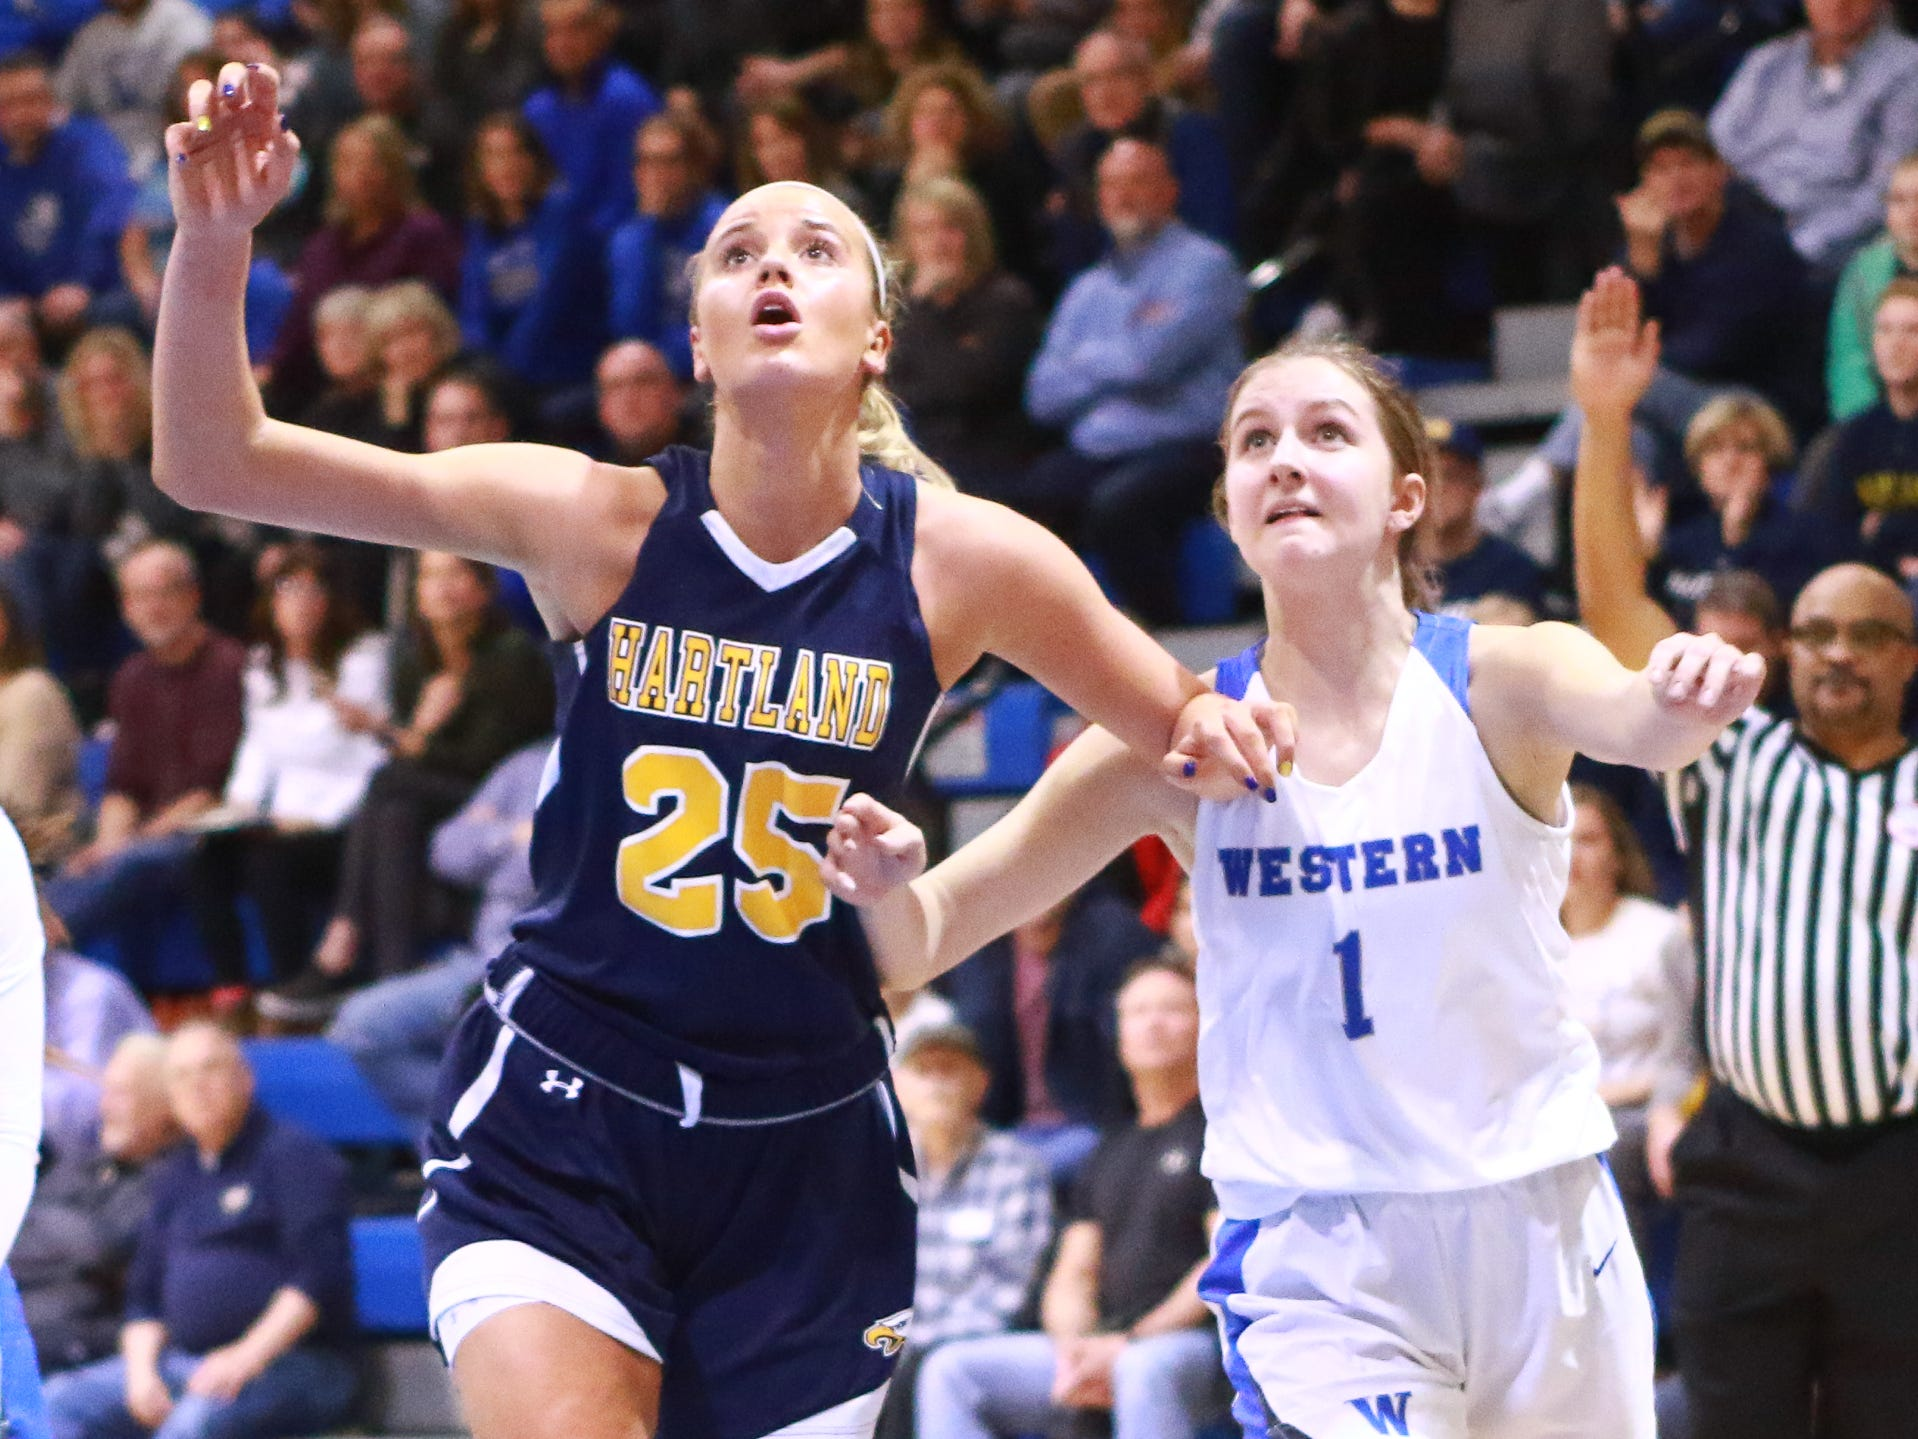 Hartland's Whitney Sollom (25) boxes out Walled Lake Western's Zoe DeRoche in the Eagles' 50-46 victory in the Division 1 regional championship game at Lakeland on Wednesday, March 13, 2019.